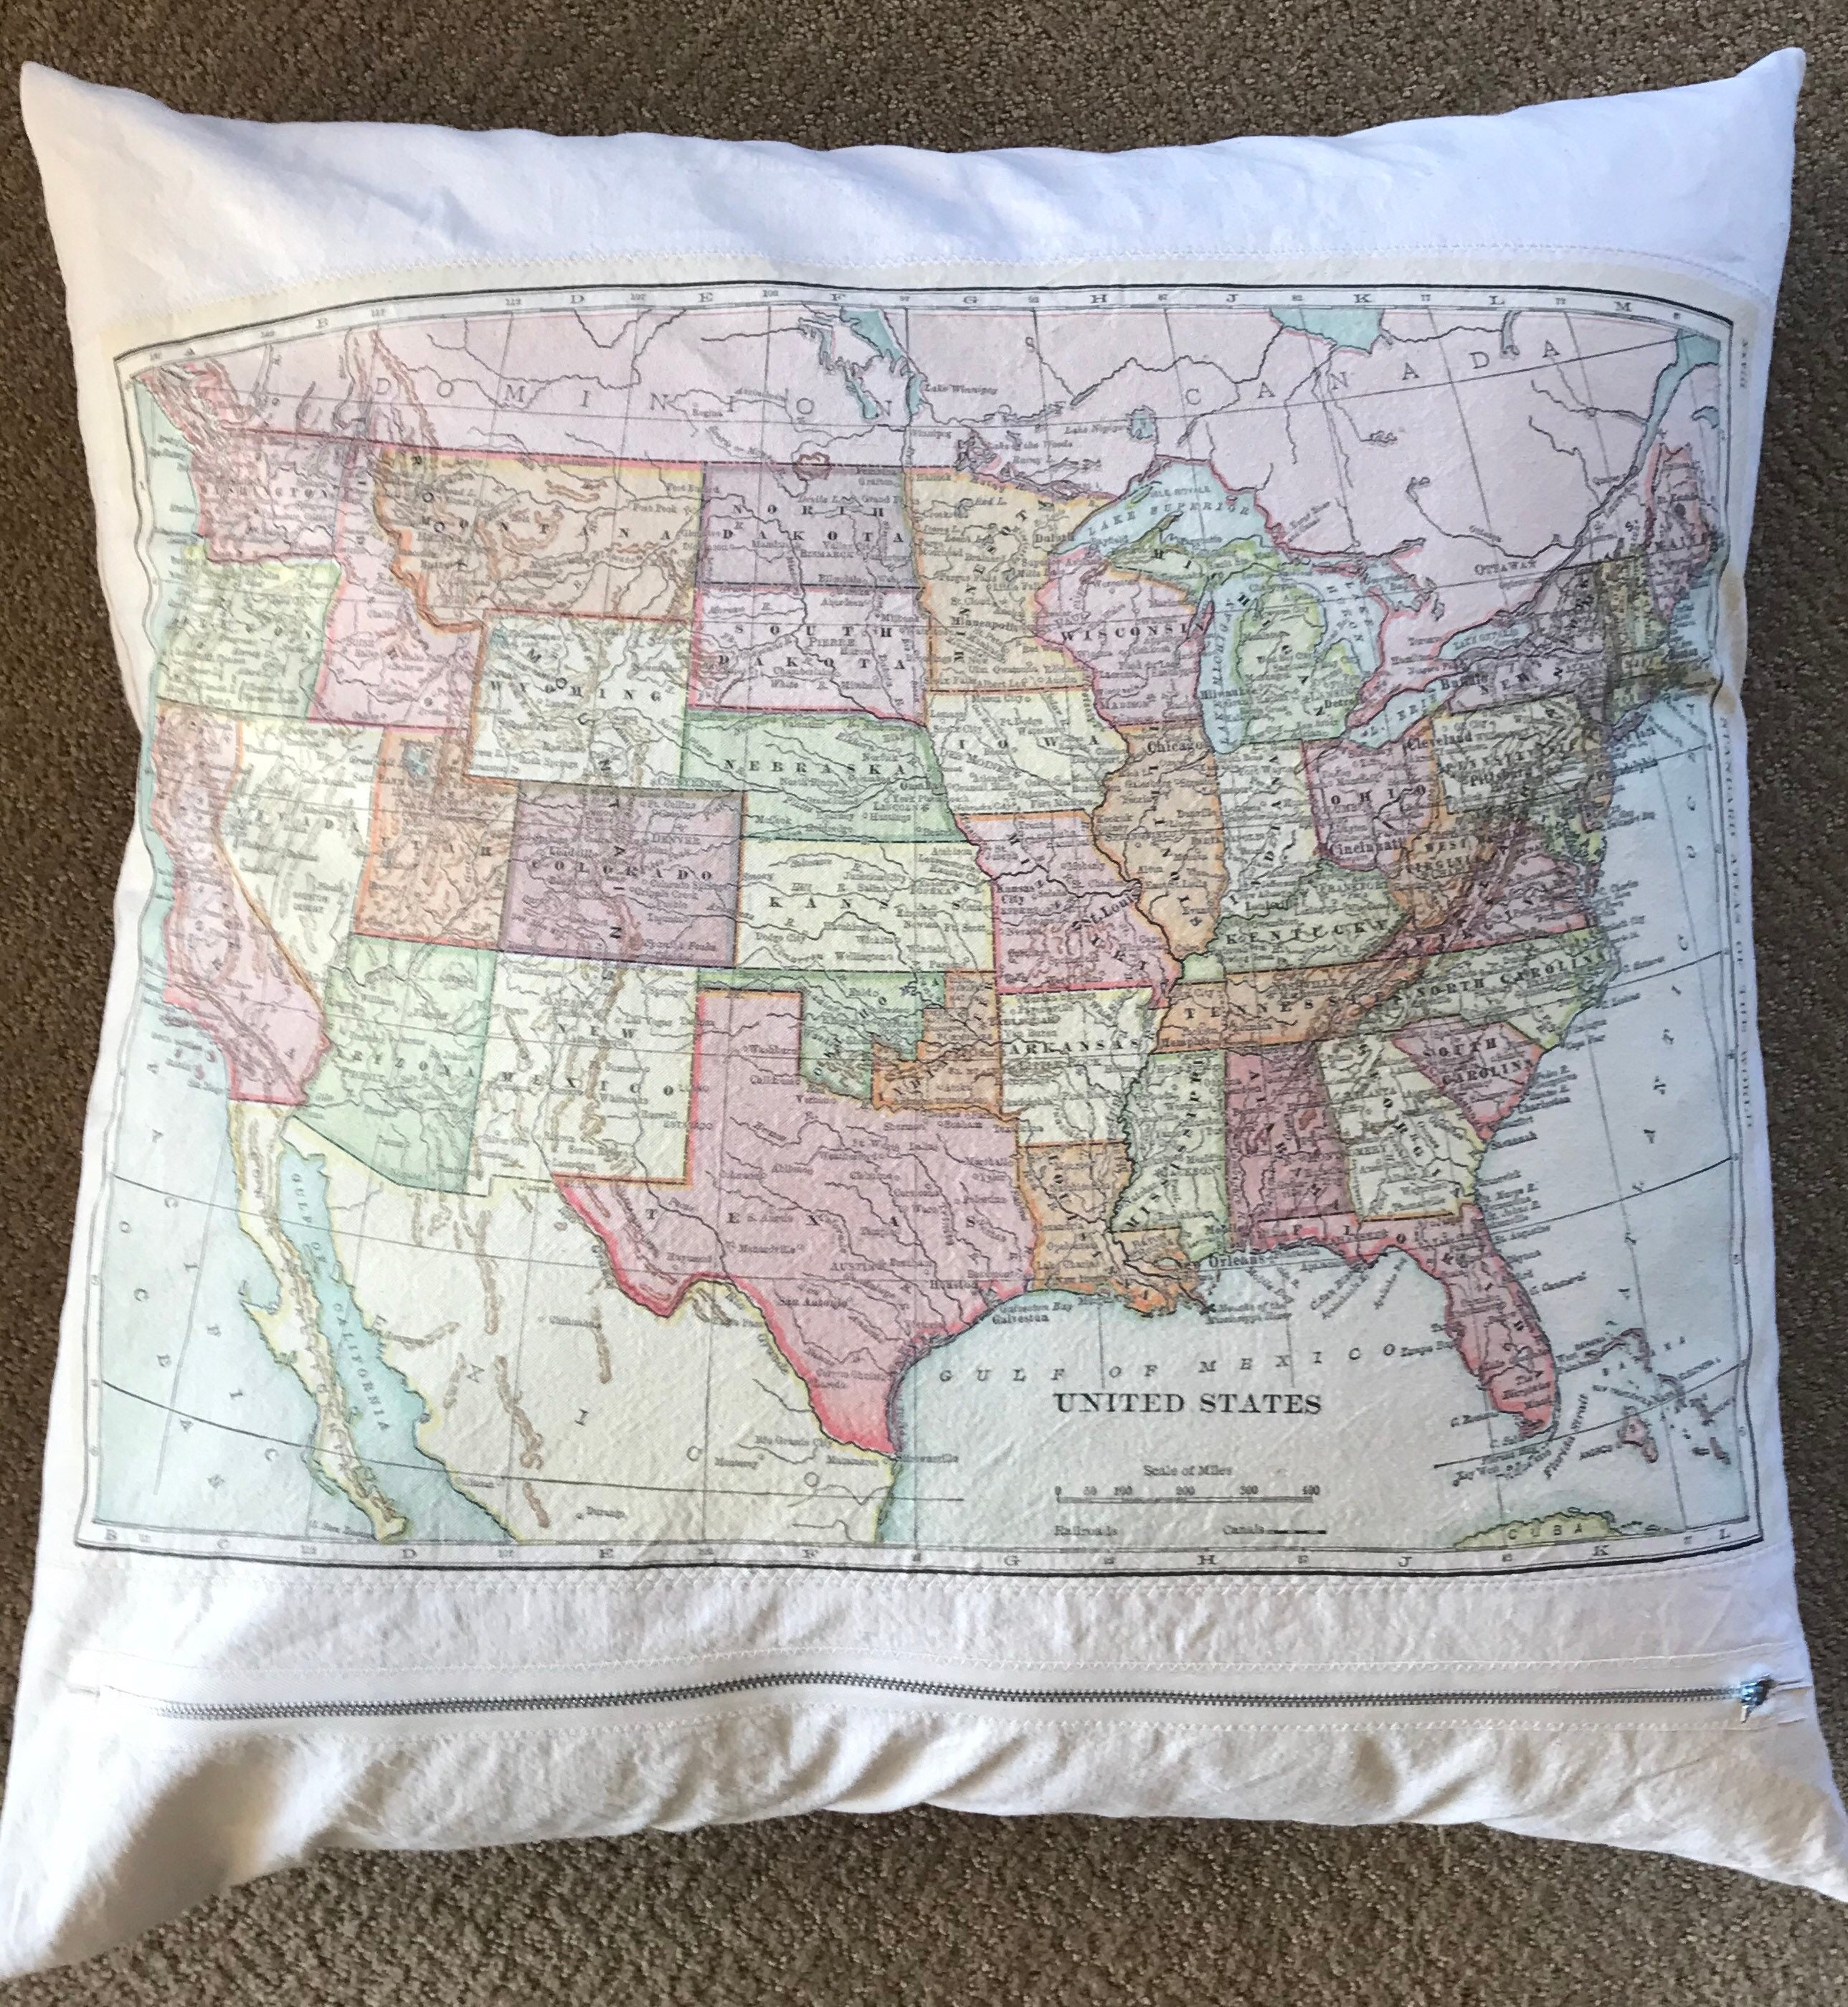 Giant Us Map Pillow Etsy - Giant-us-map